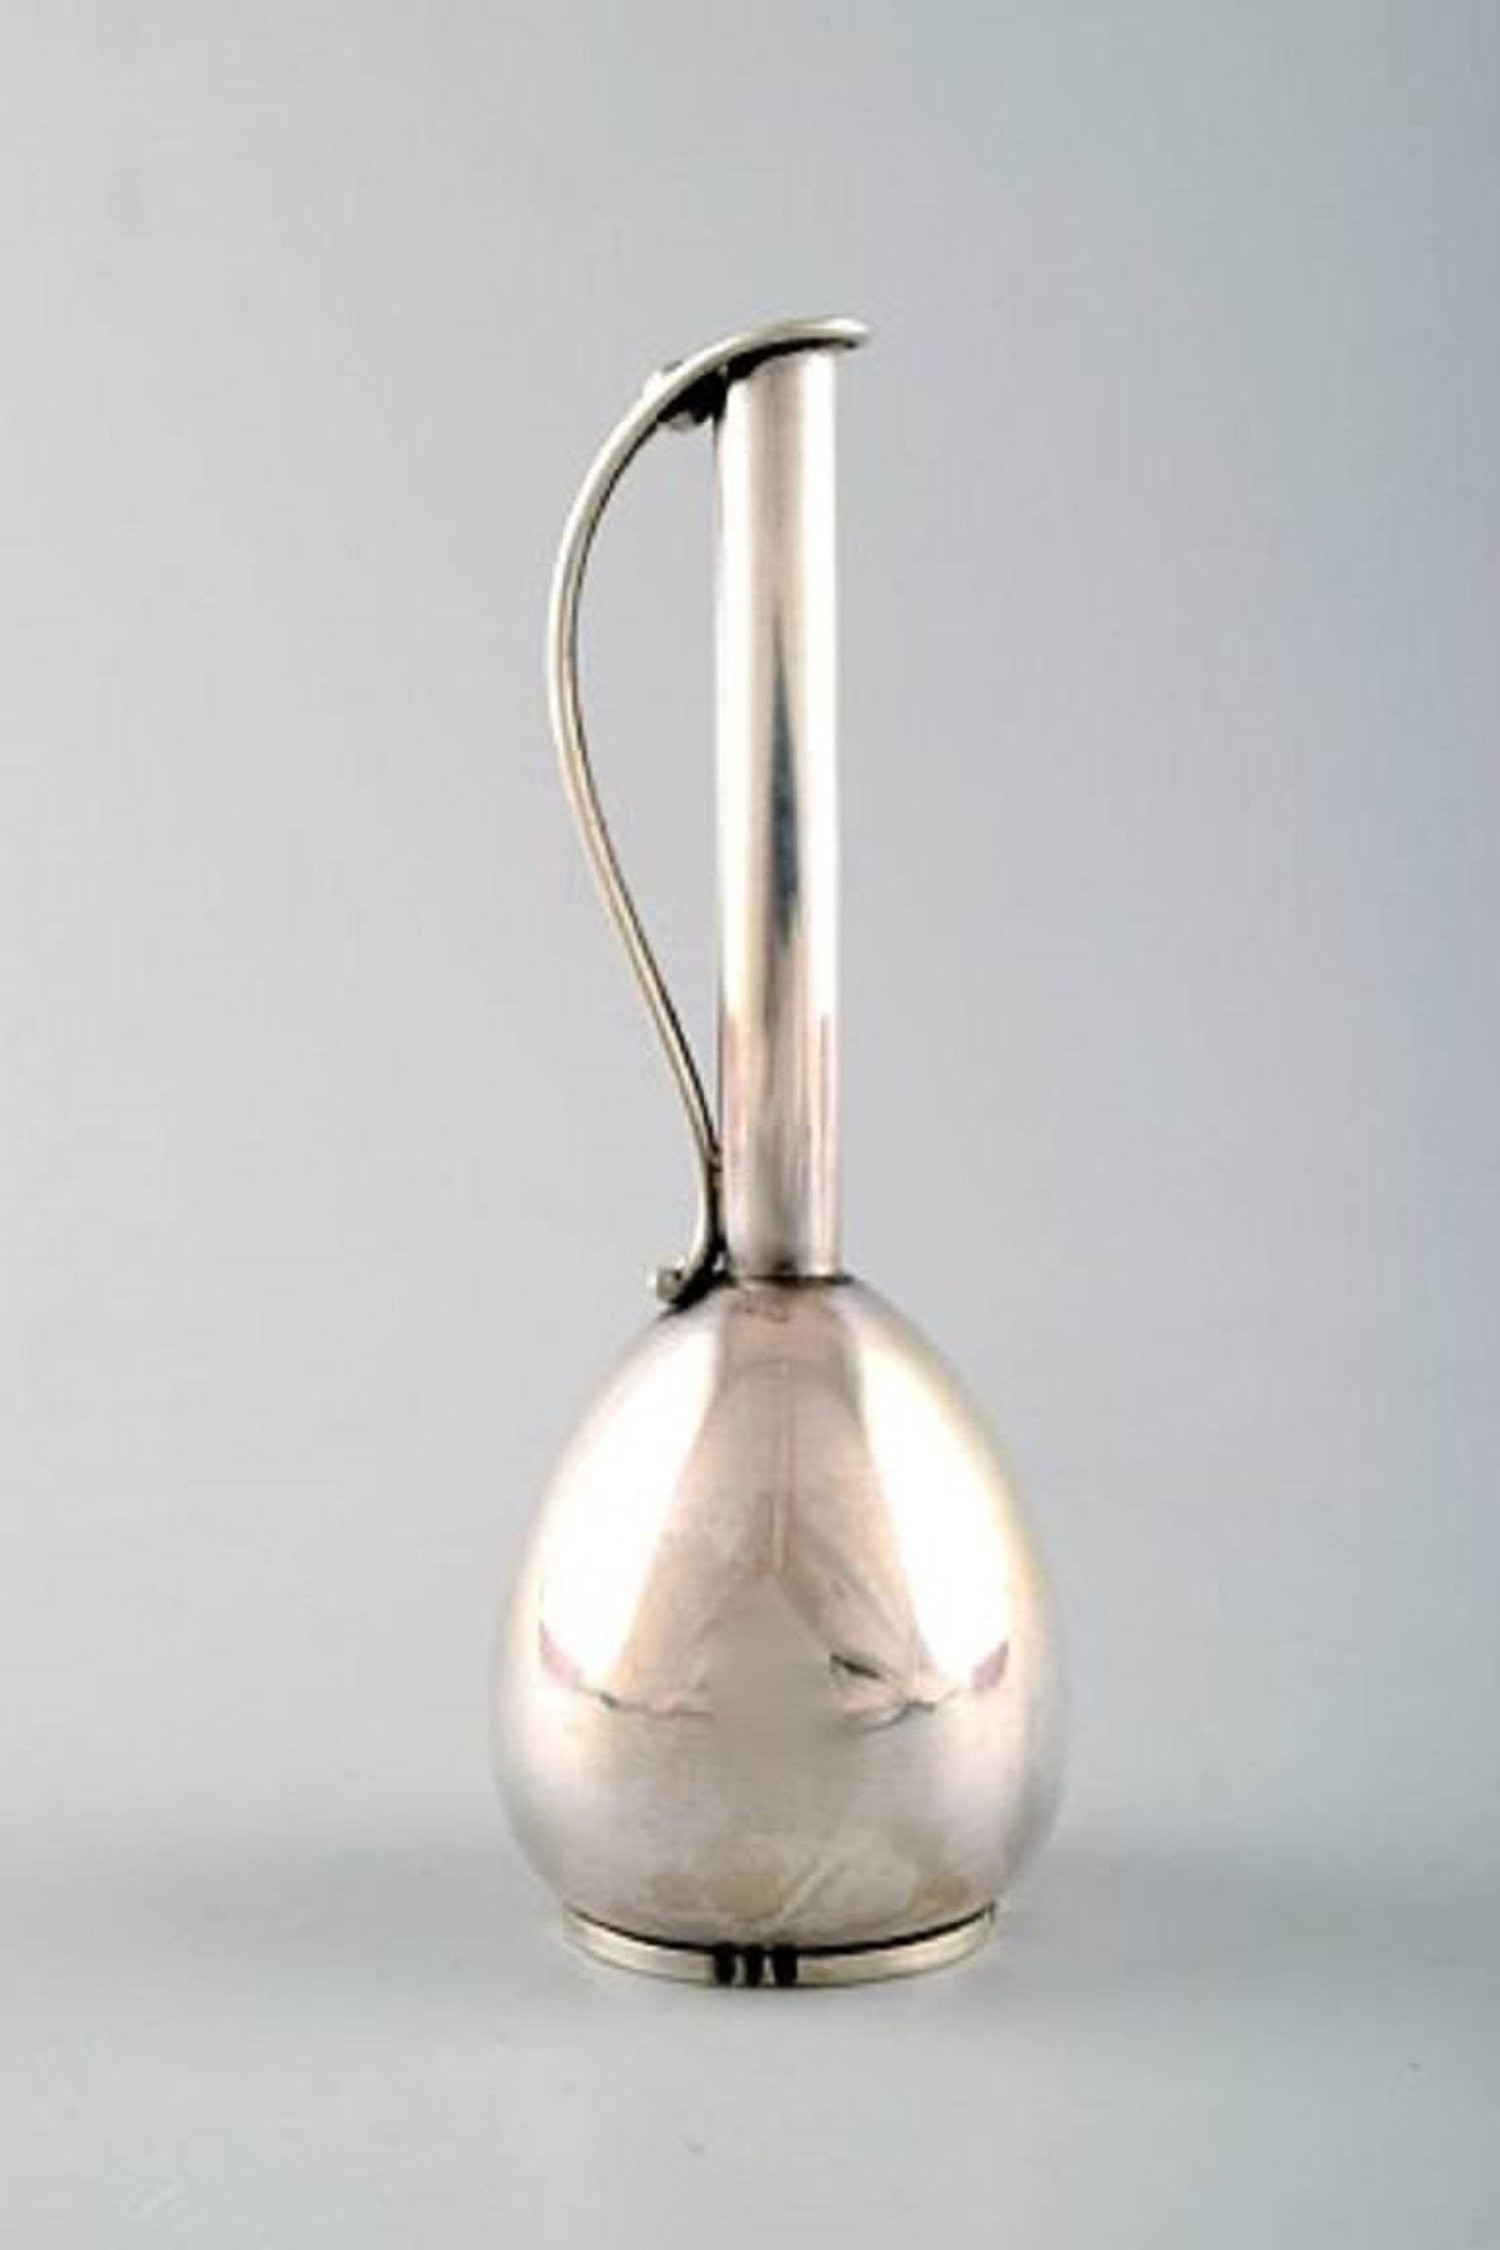 where to buy silver vase orchids of c c hermann small modernistic orchid vase of sterling silver for for c c hermann small modernistic orchid vase of sterling silver for sale at 1stdibs